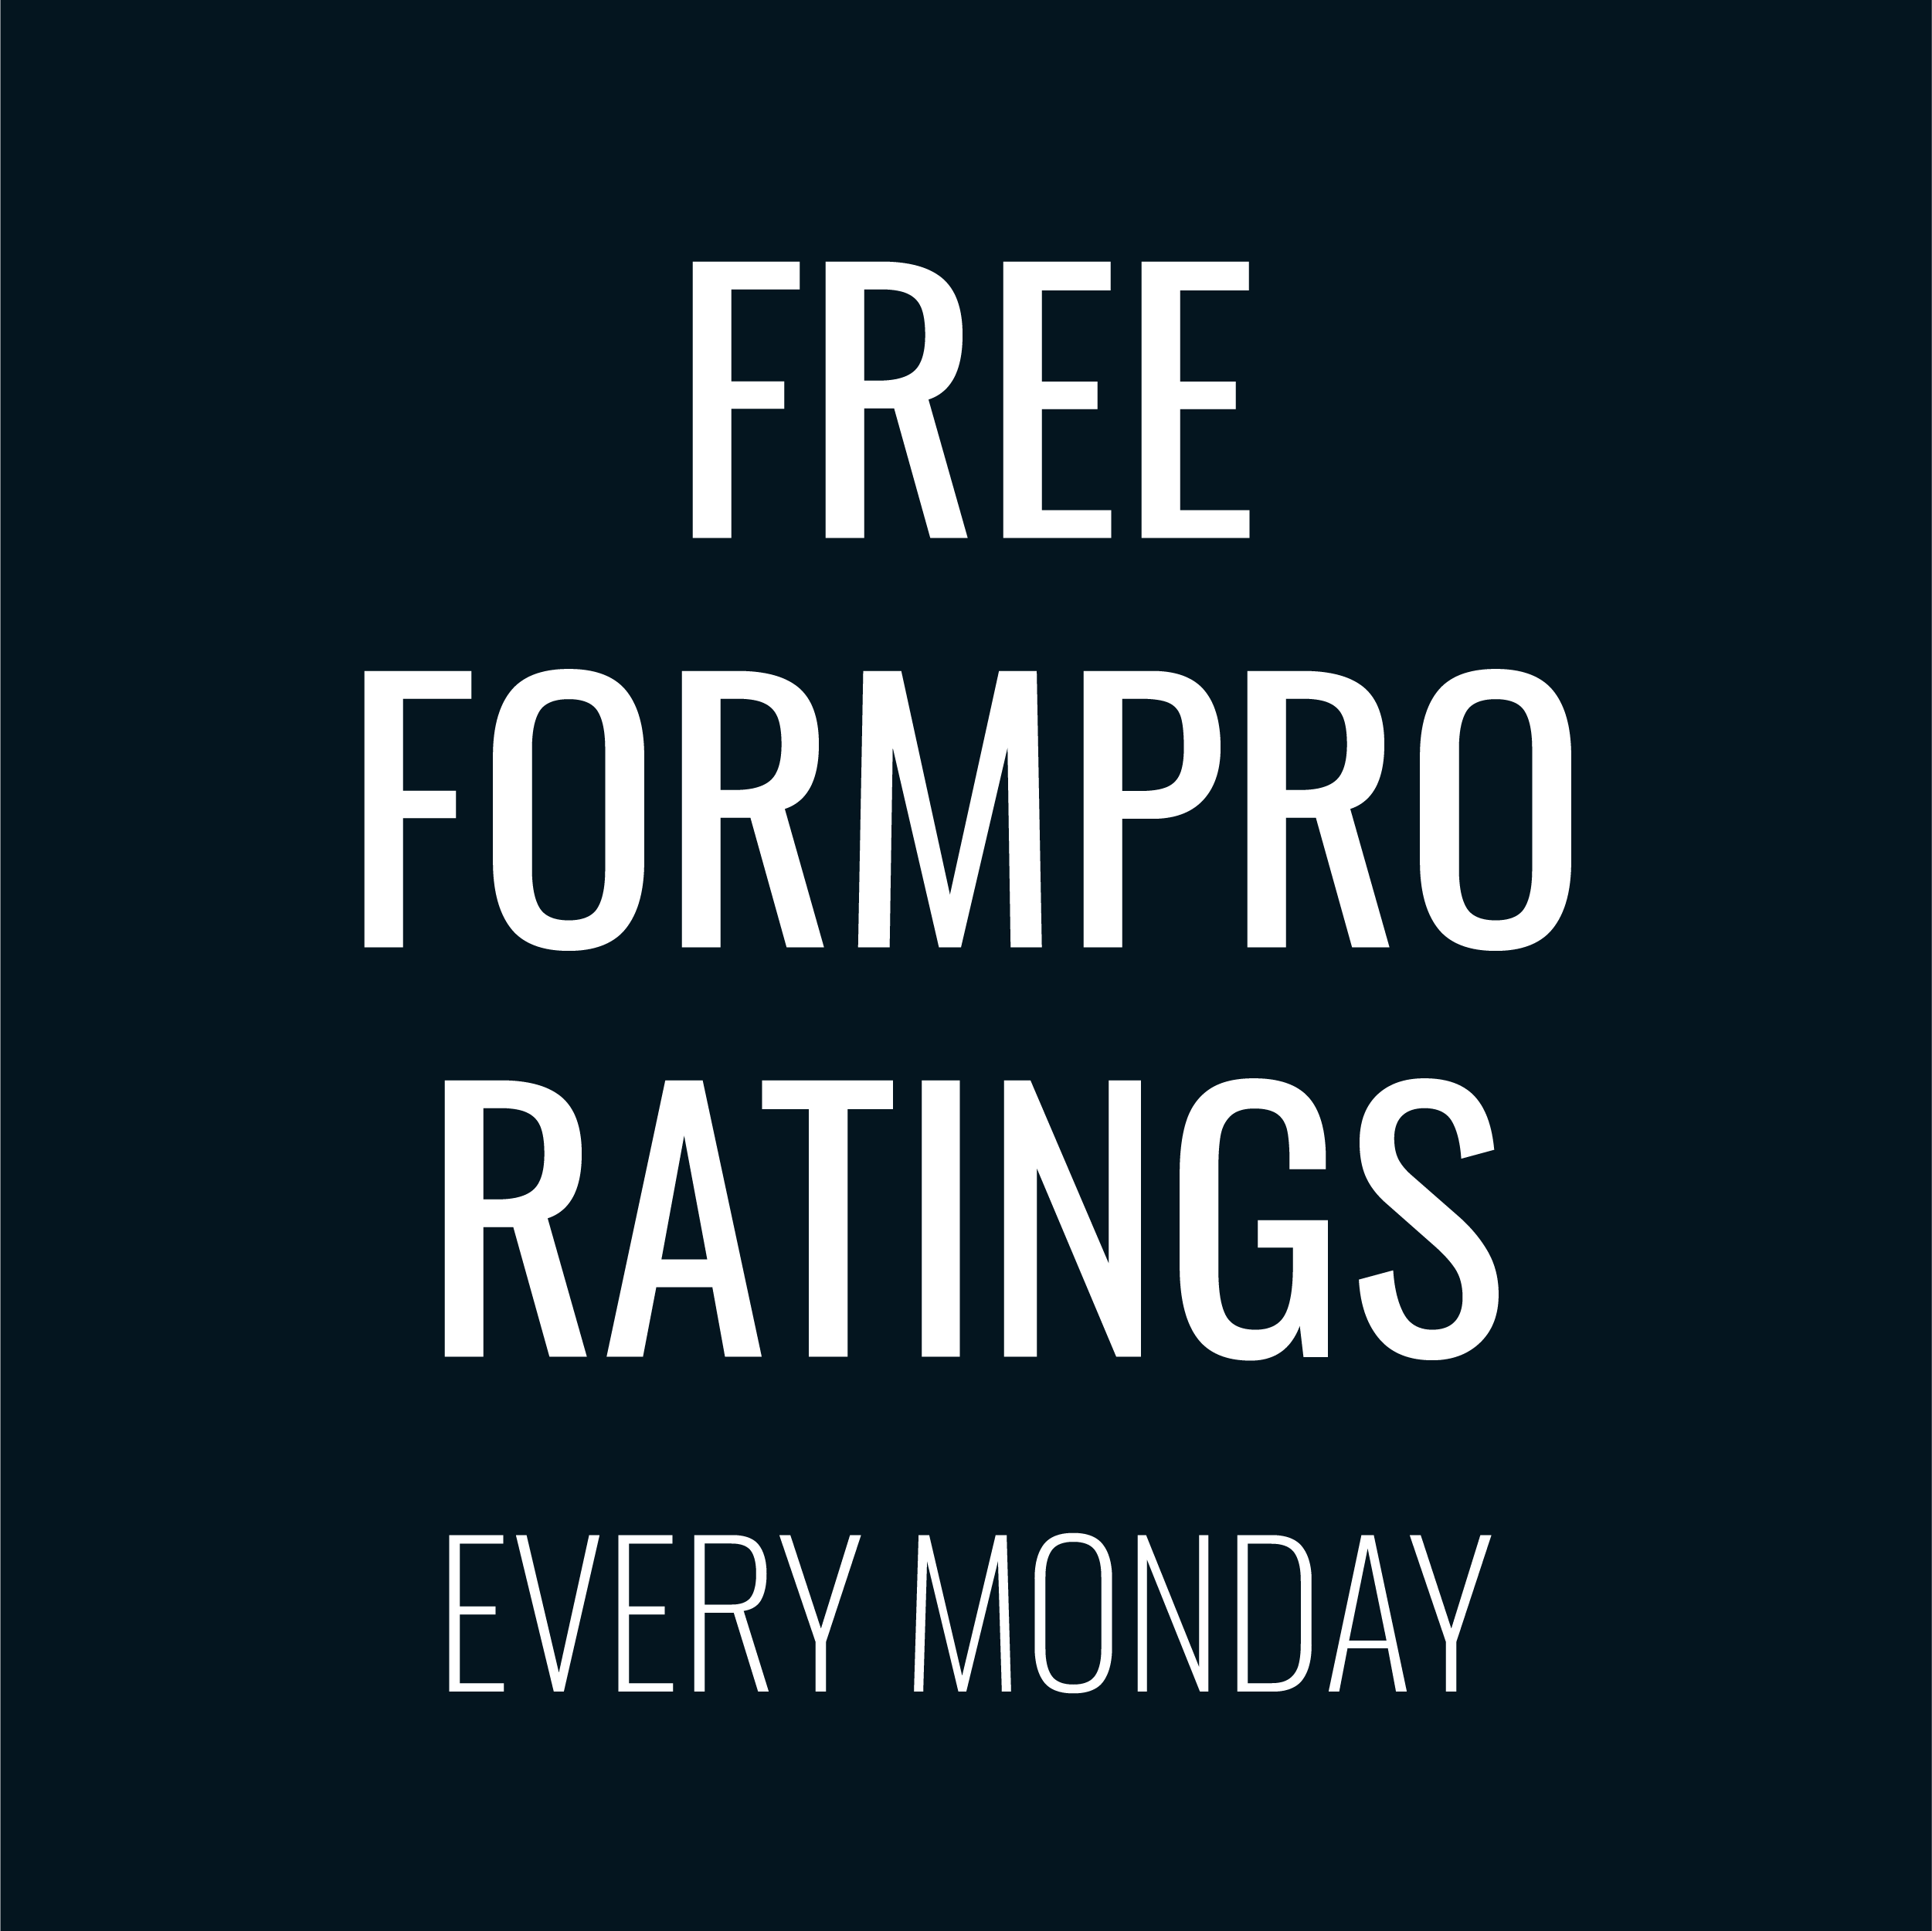 Free Greyhound Ratings This Week